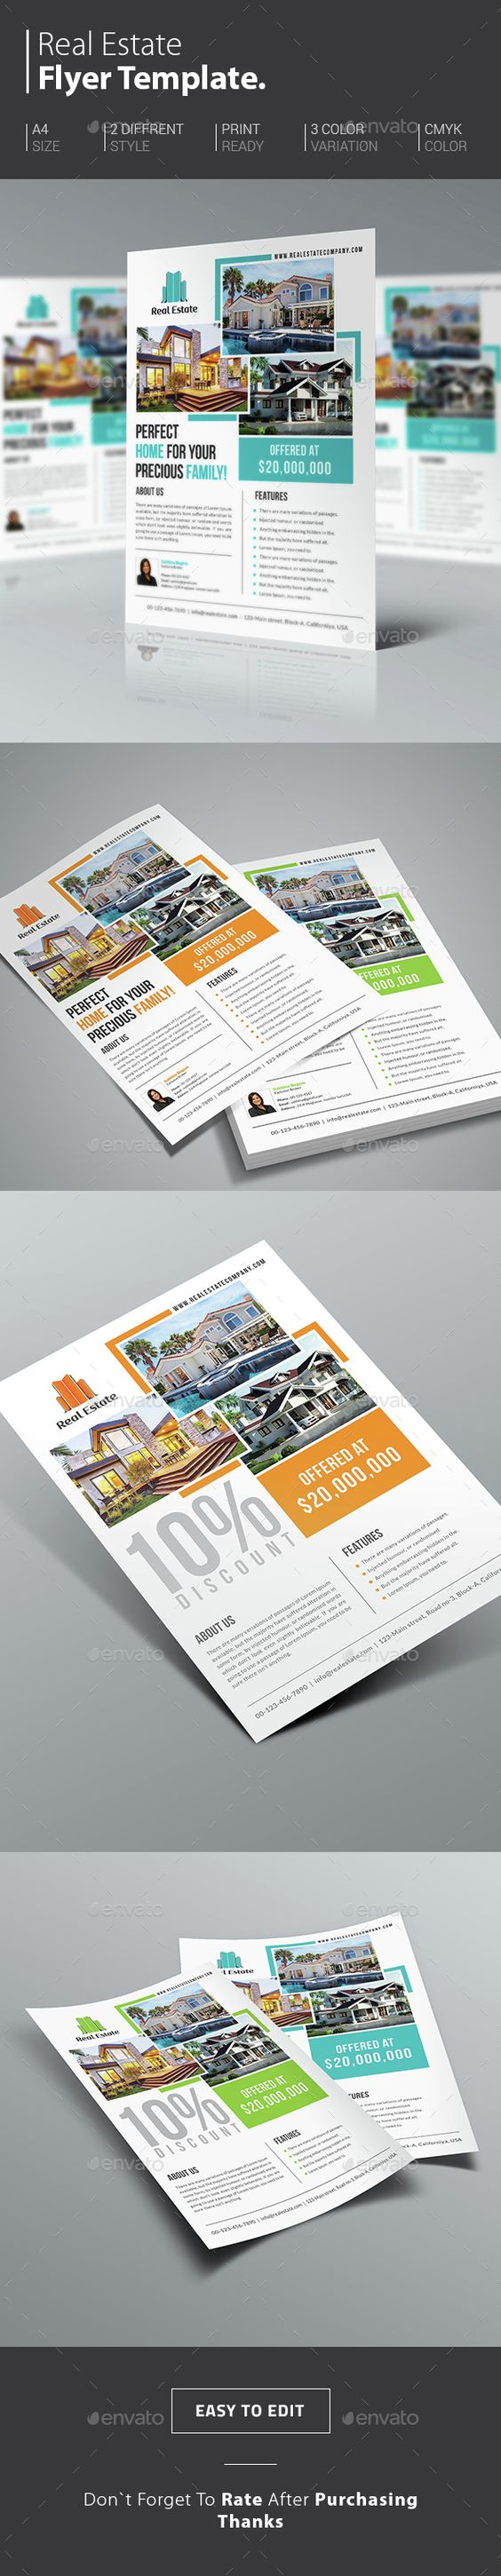 real estate flyer ad design psd flyer templates and design real estate flyer template is a great tool for promoting your real estate business also useful for a realtor real e